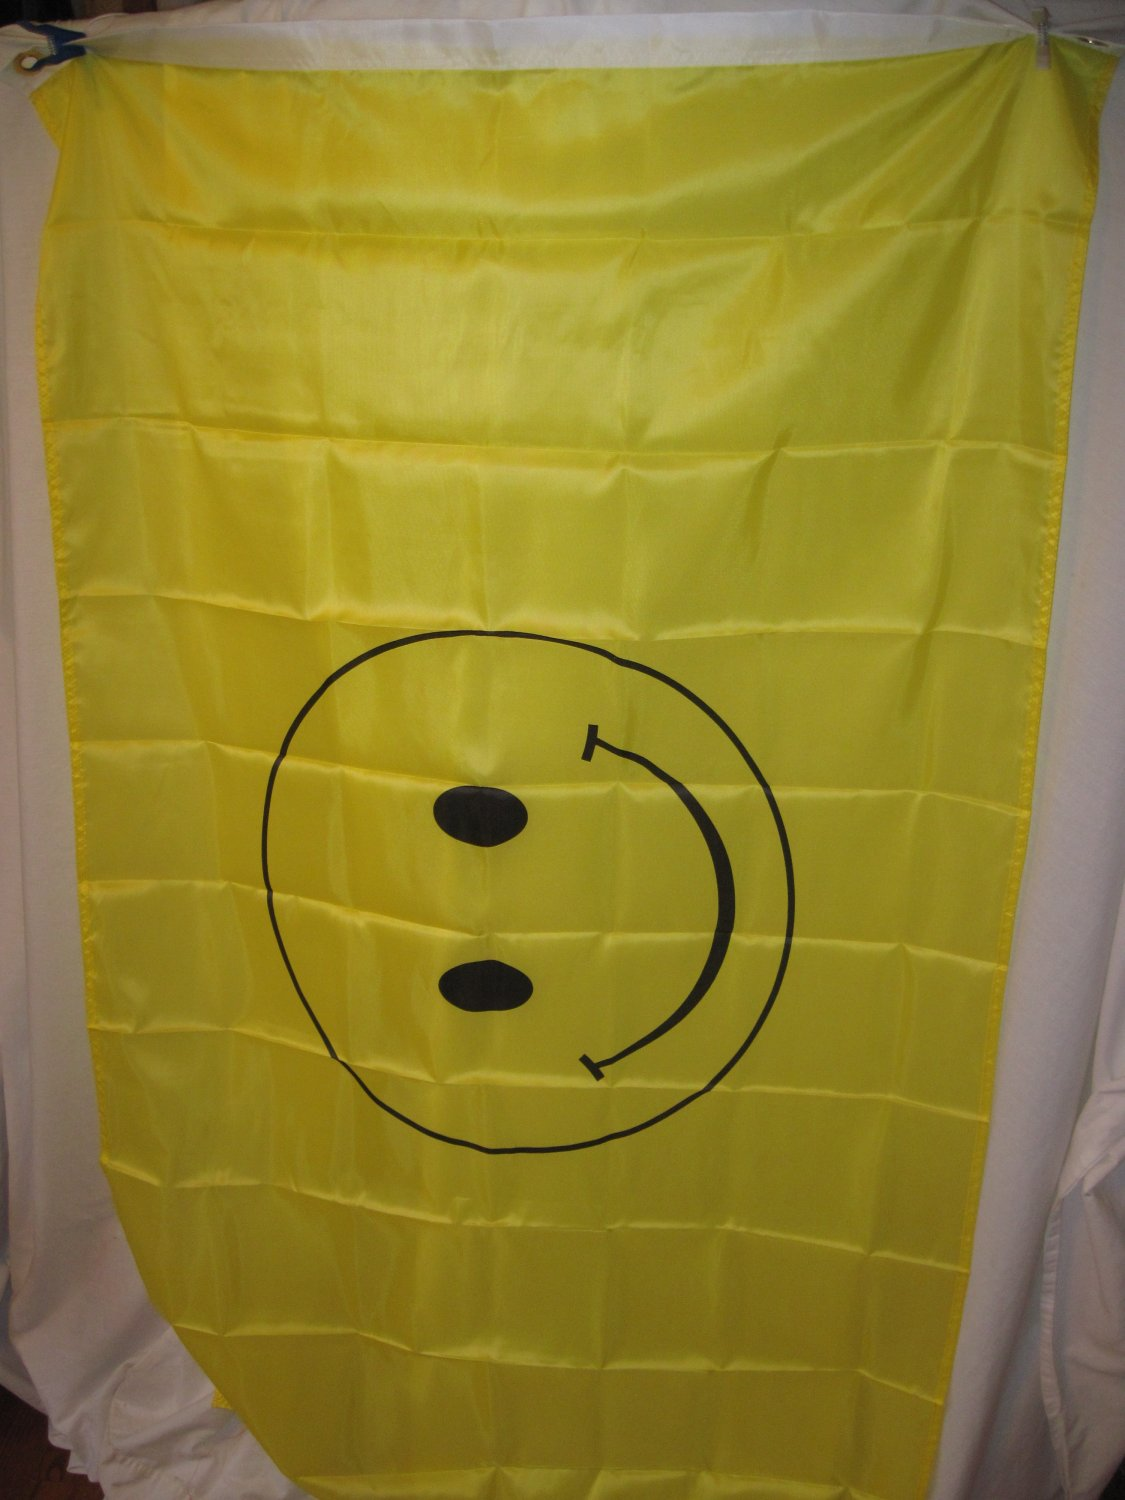 SMILEY FACE YELLOW FLAG 3X5 3 X 5 VERY NICE NEW